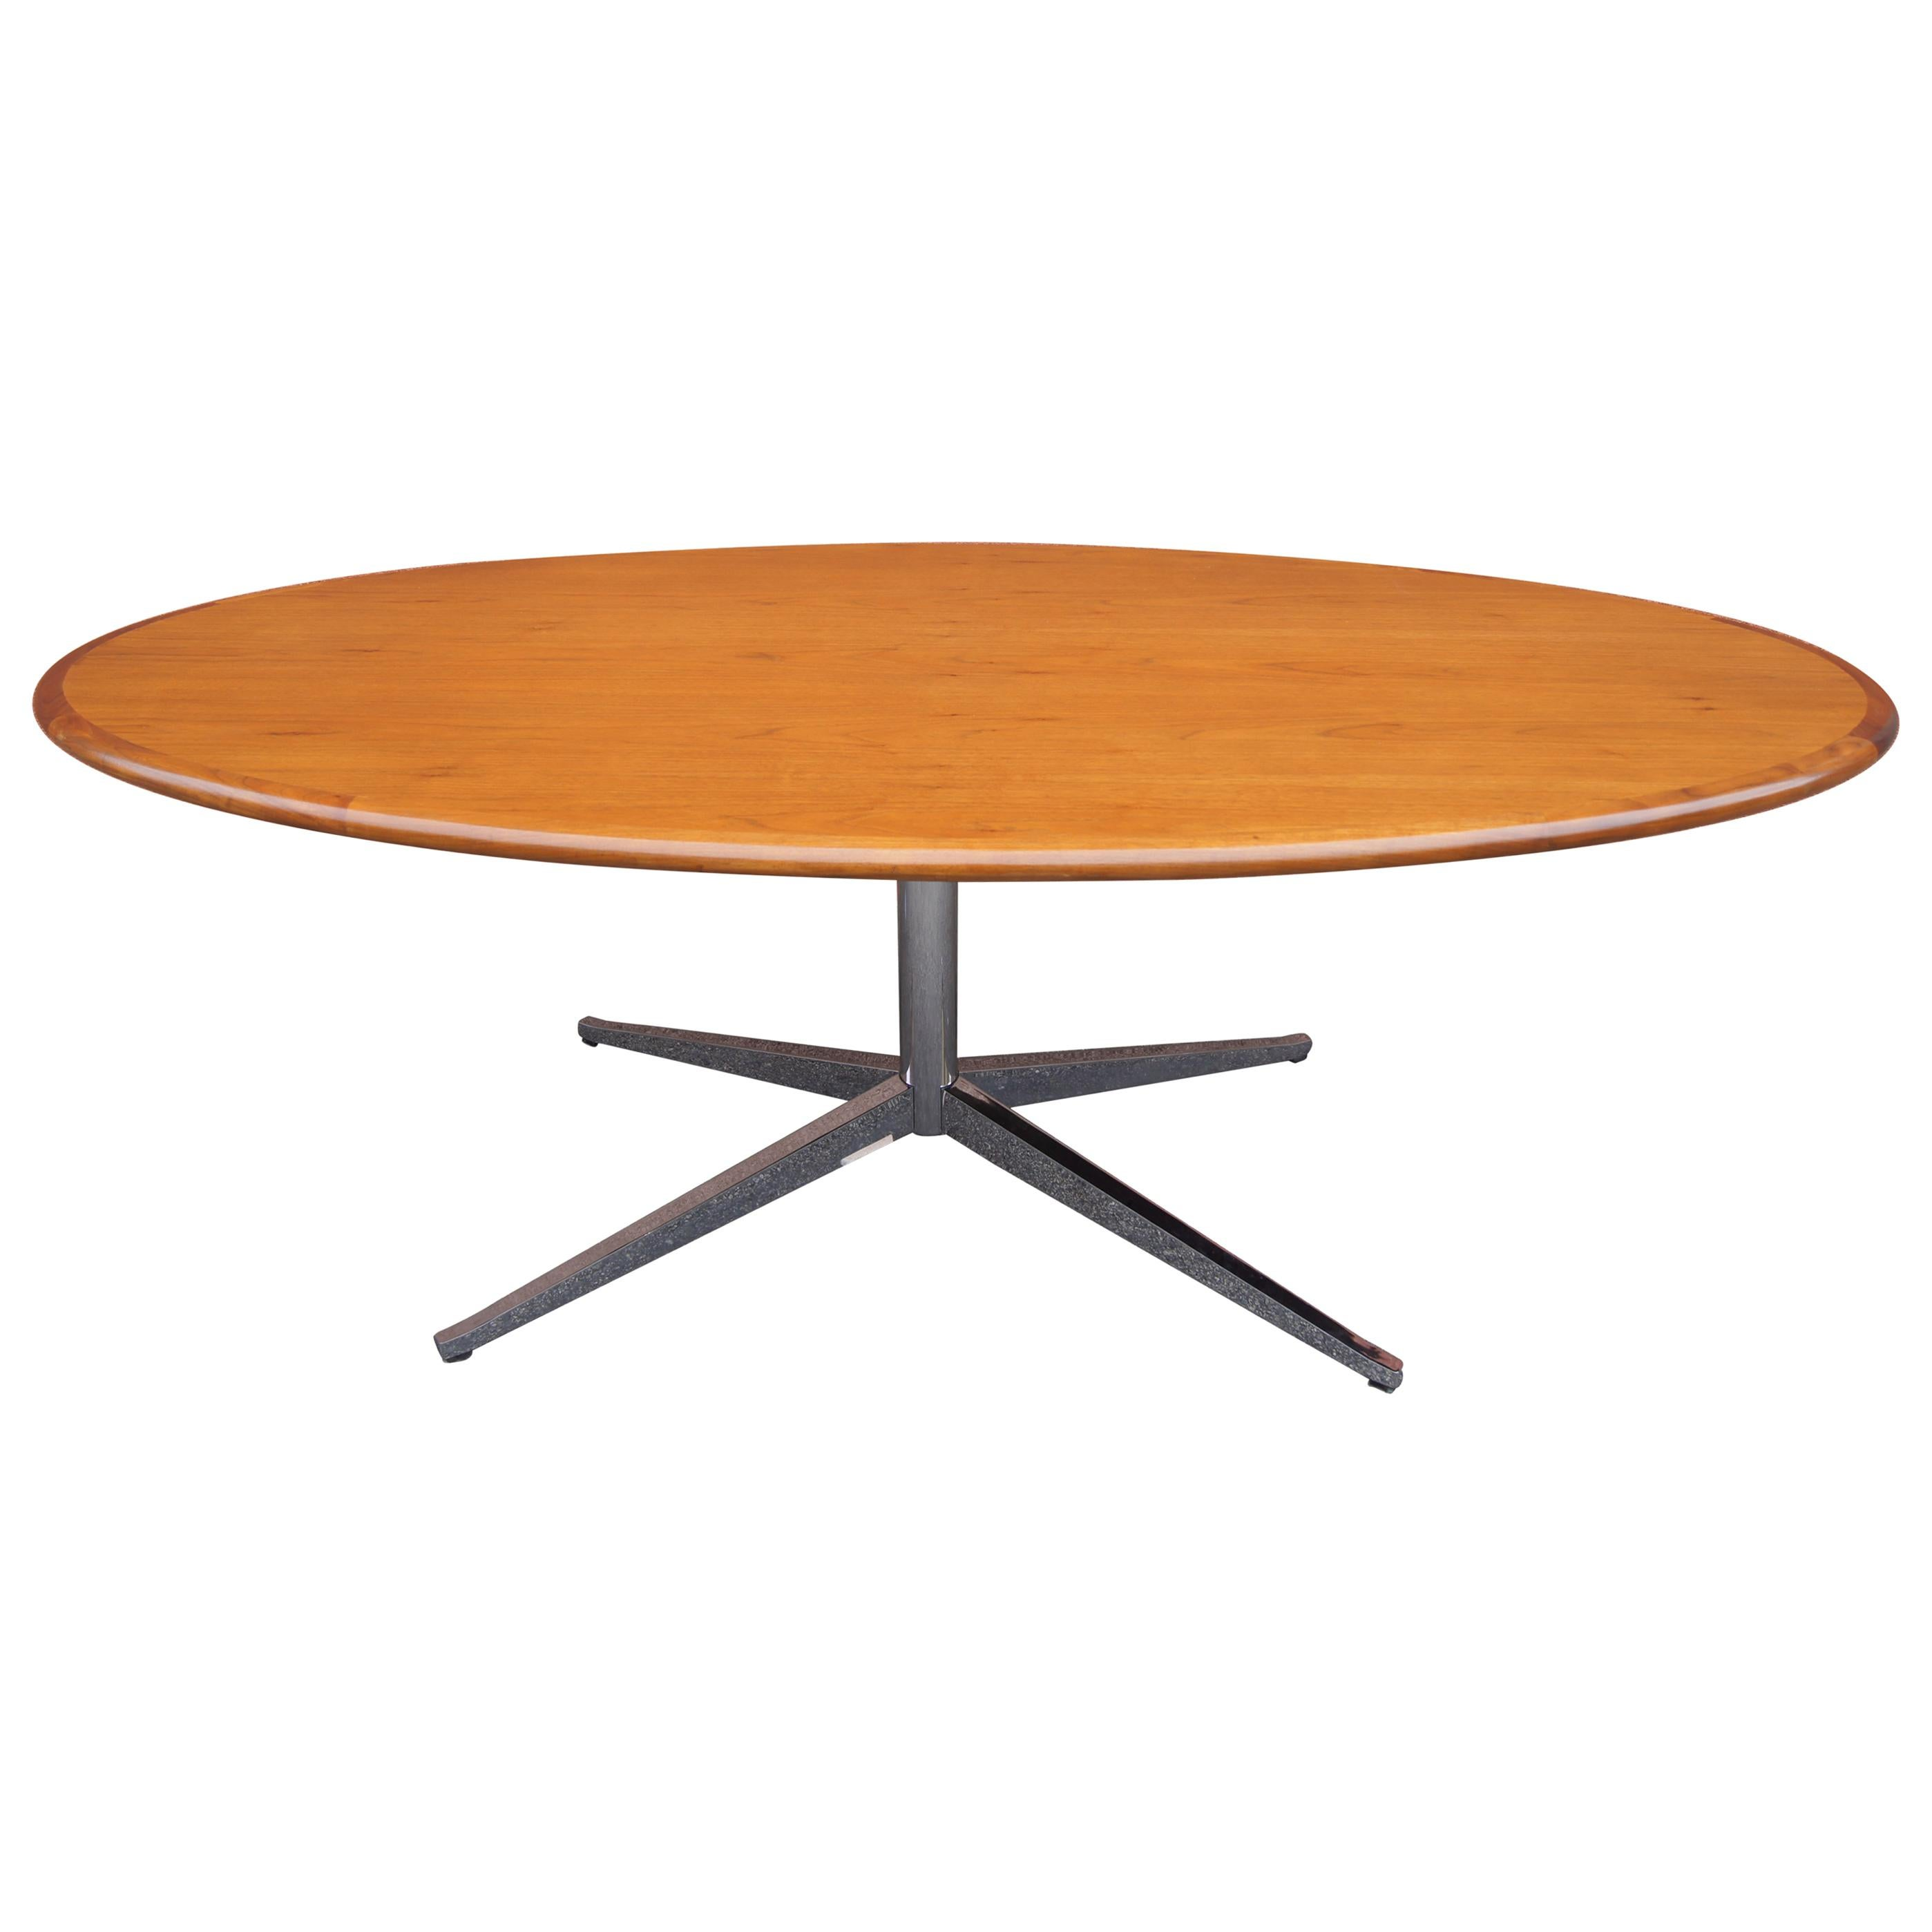 Custom Oval Walnut and Chrome 2480 Table or Desk by Florence Knoll